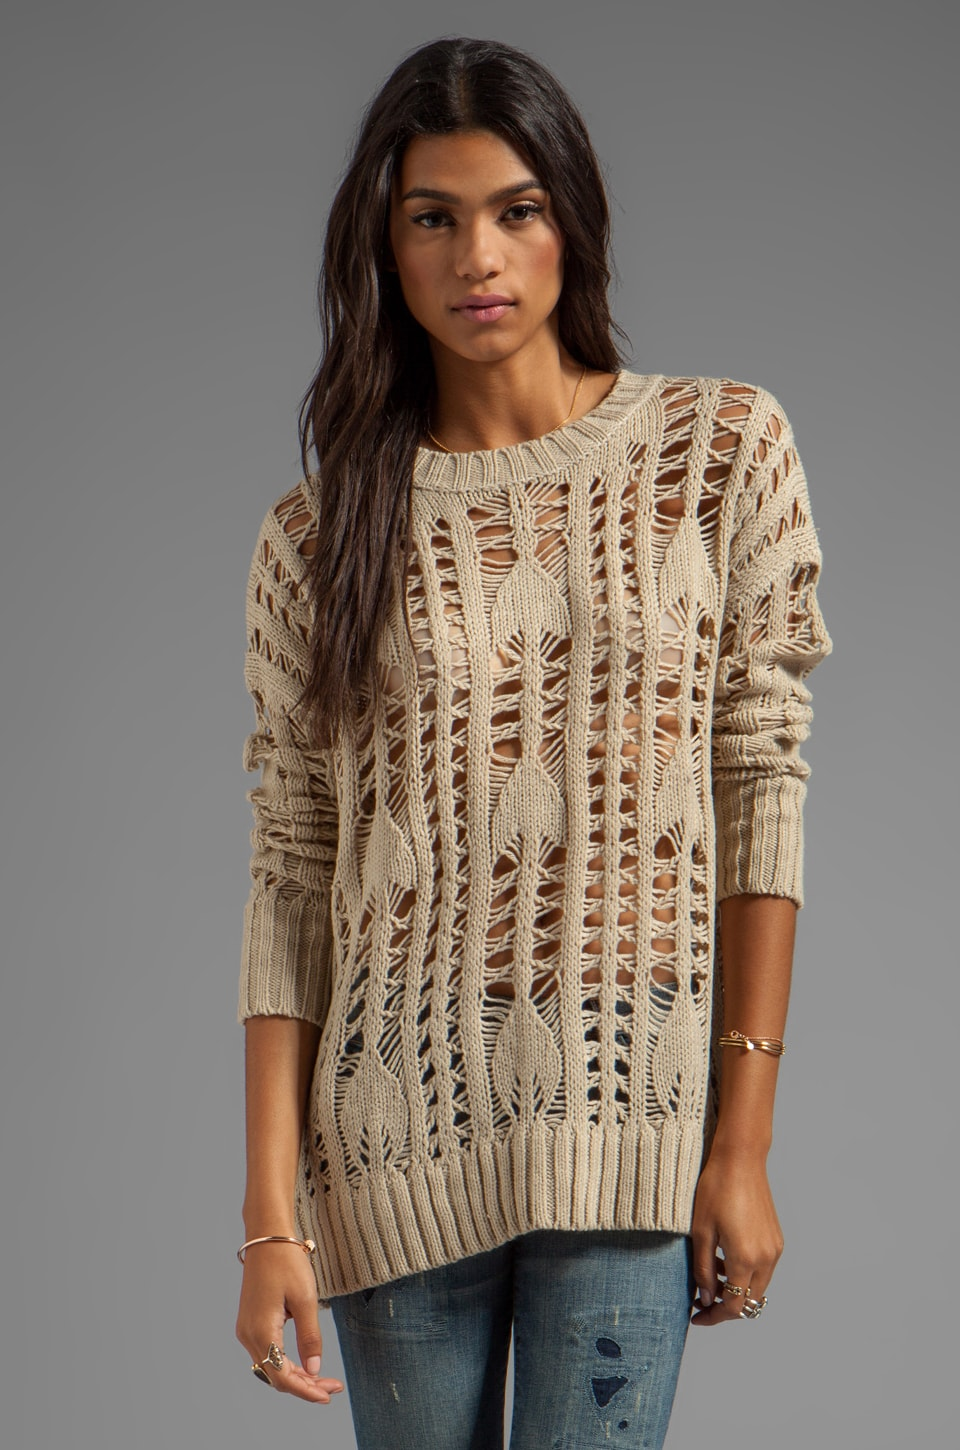 HEARTLOOM Samara Sweater in Sand